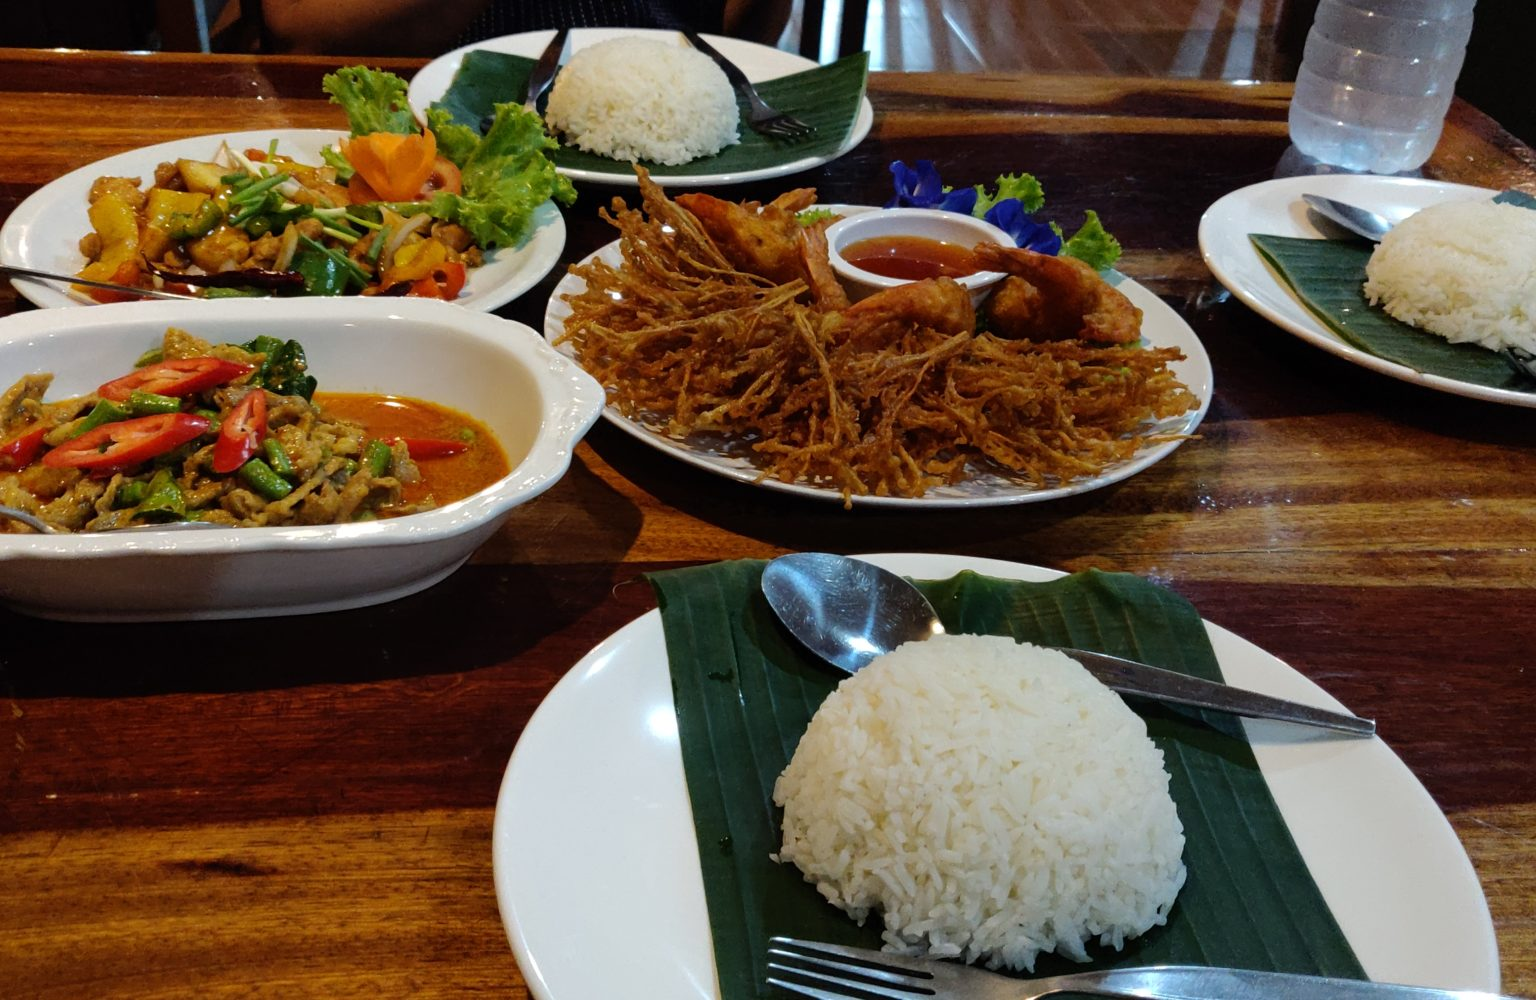 A delicious Thai meal at the Khao Sok Nature Resort